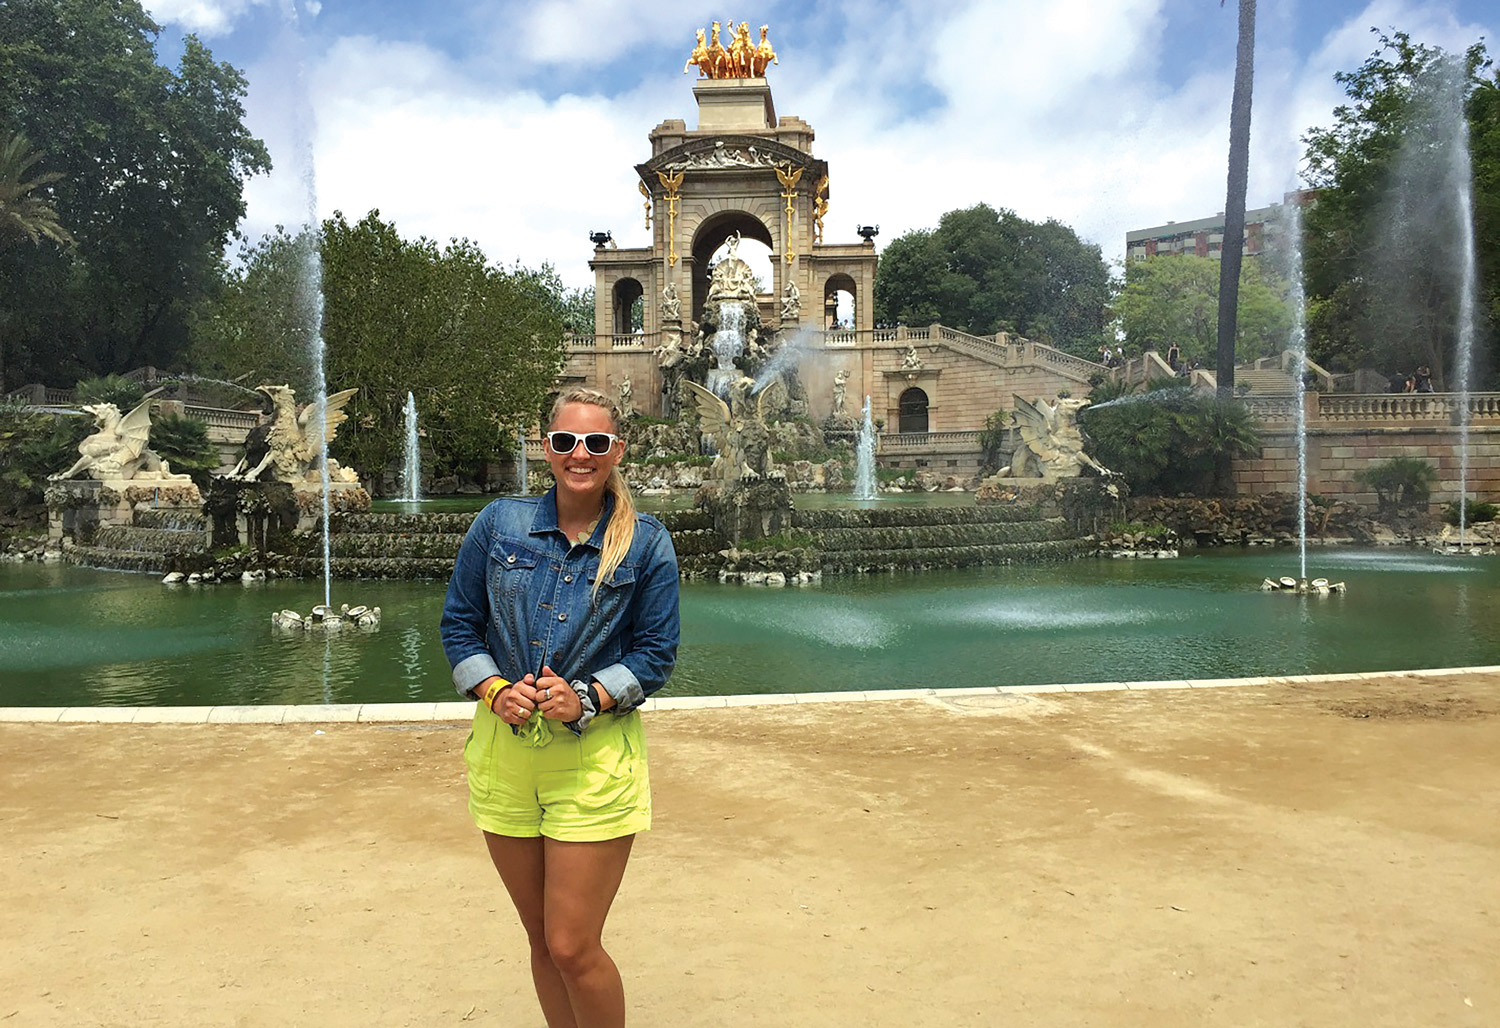 Brenna Leahy studies abroad as a Saint Mary